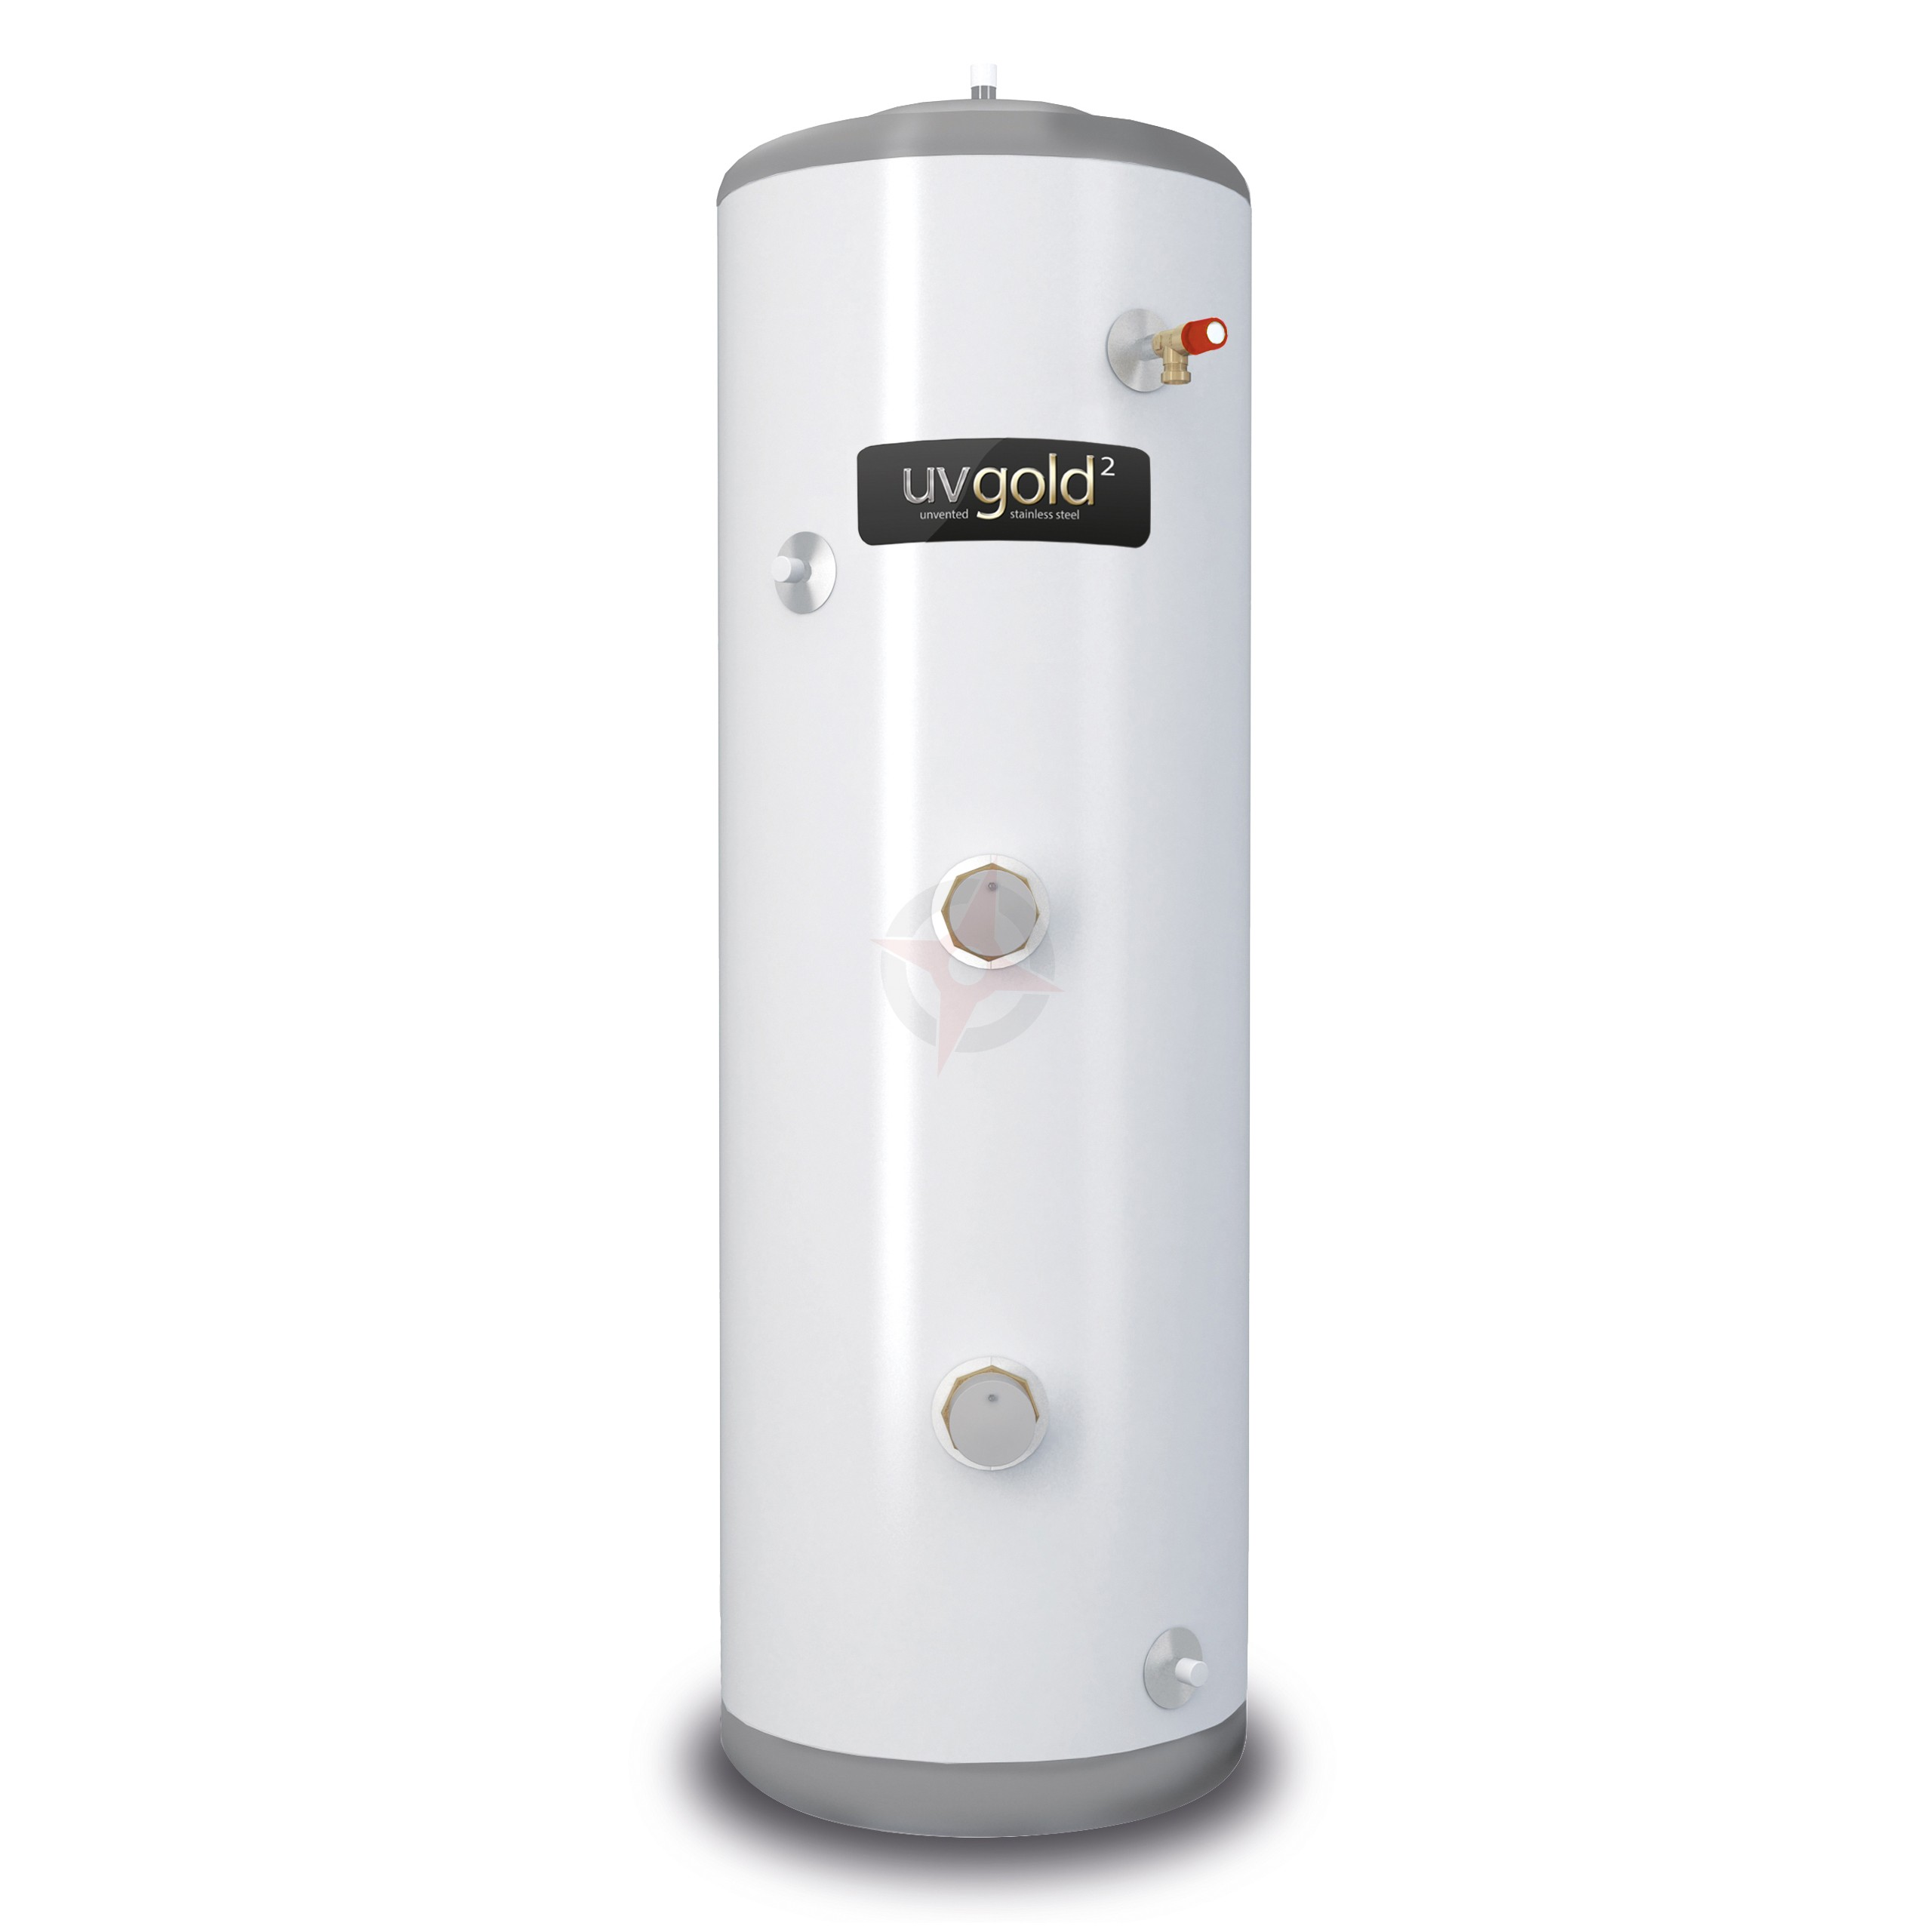 uvgold2 150L Direct Unvented Hot Water Storage Cylinder & Kit